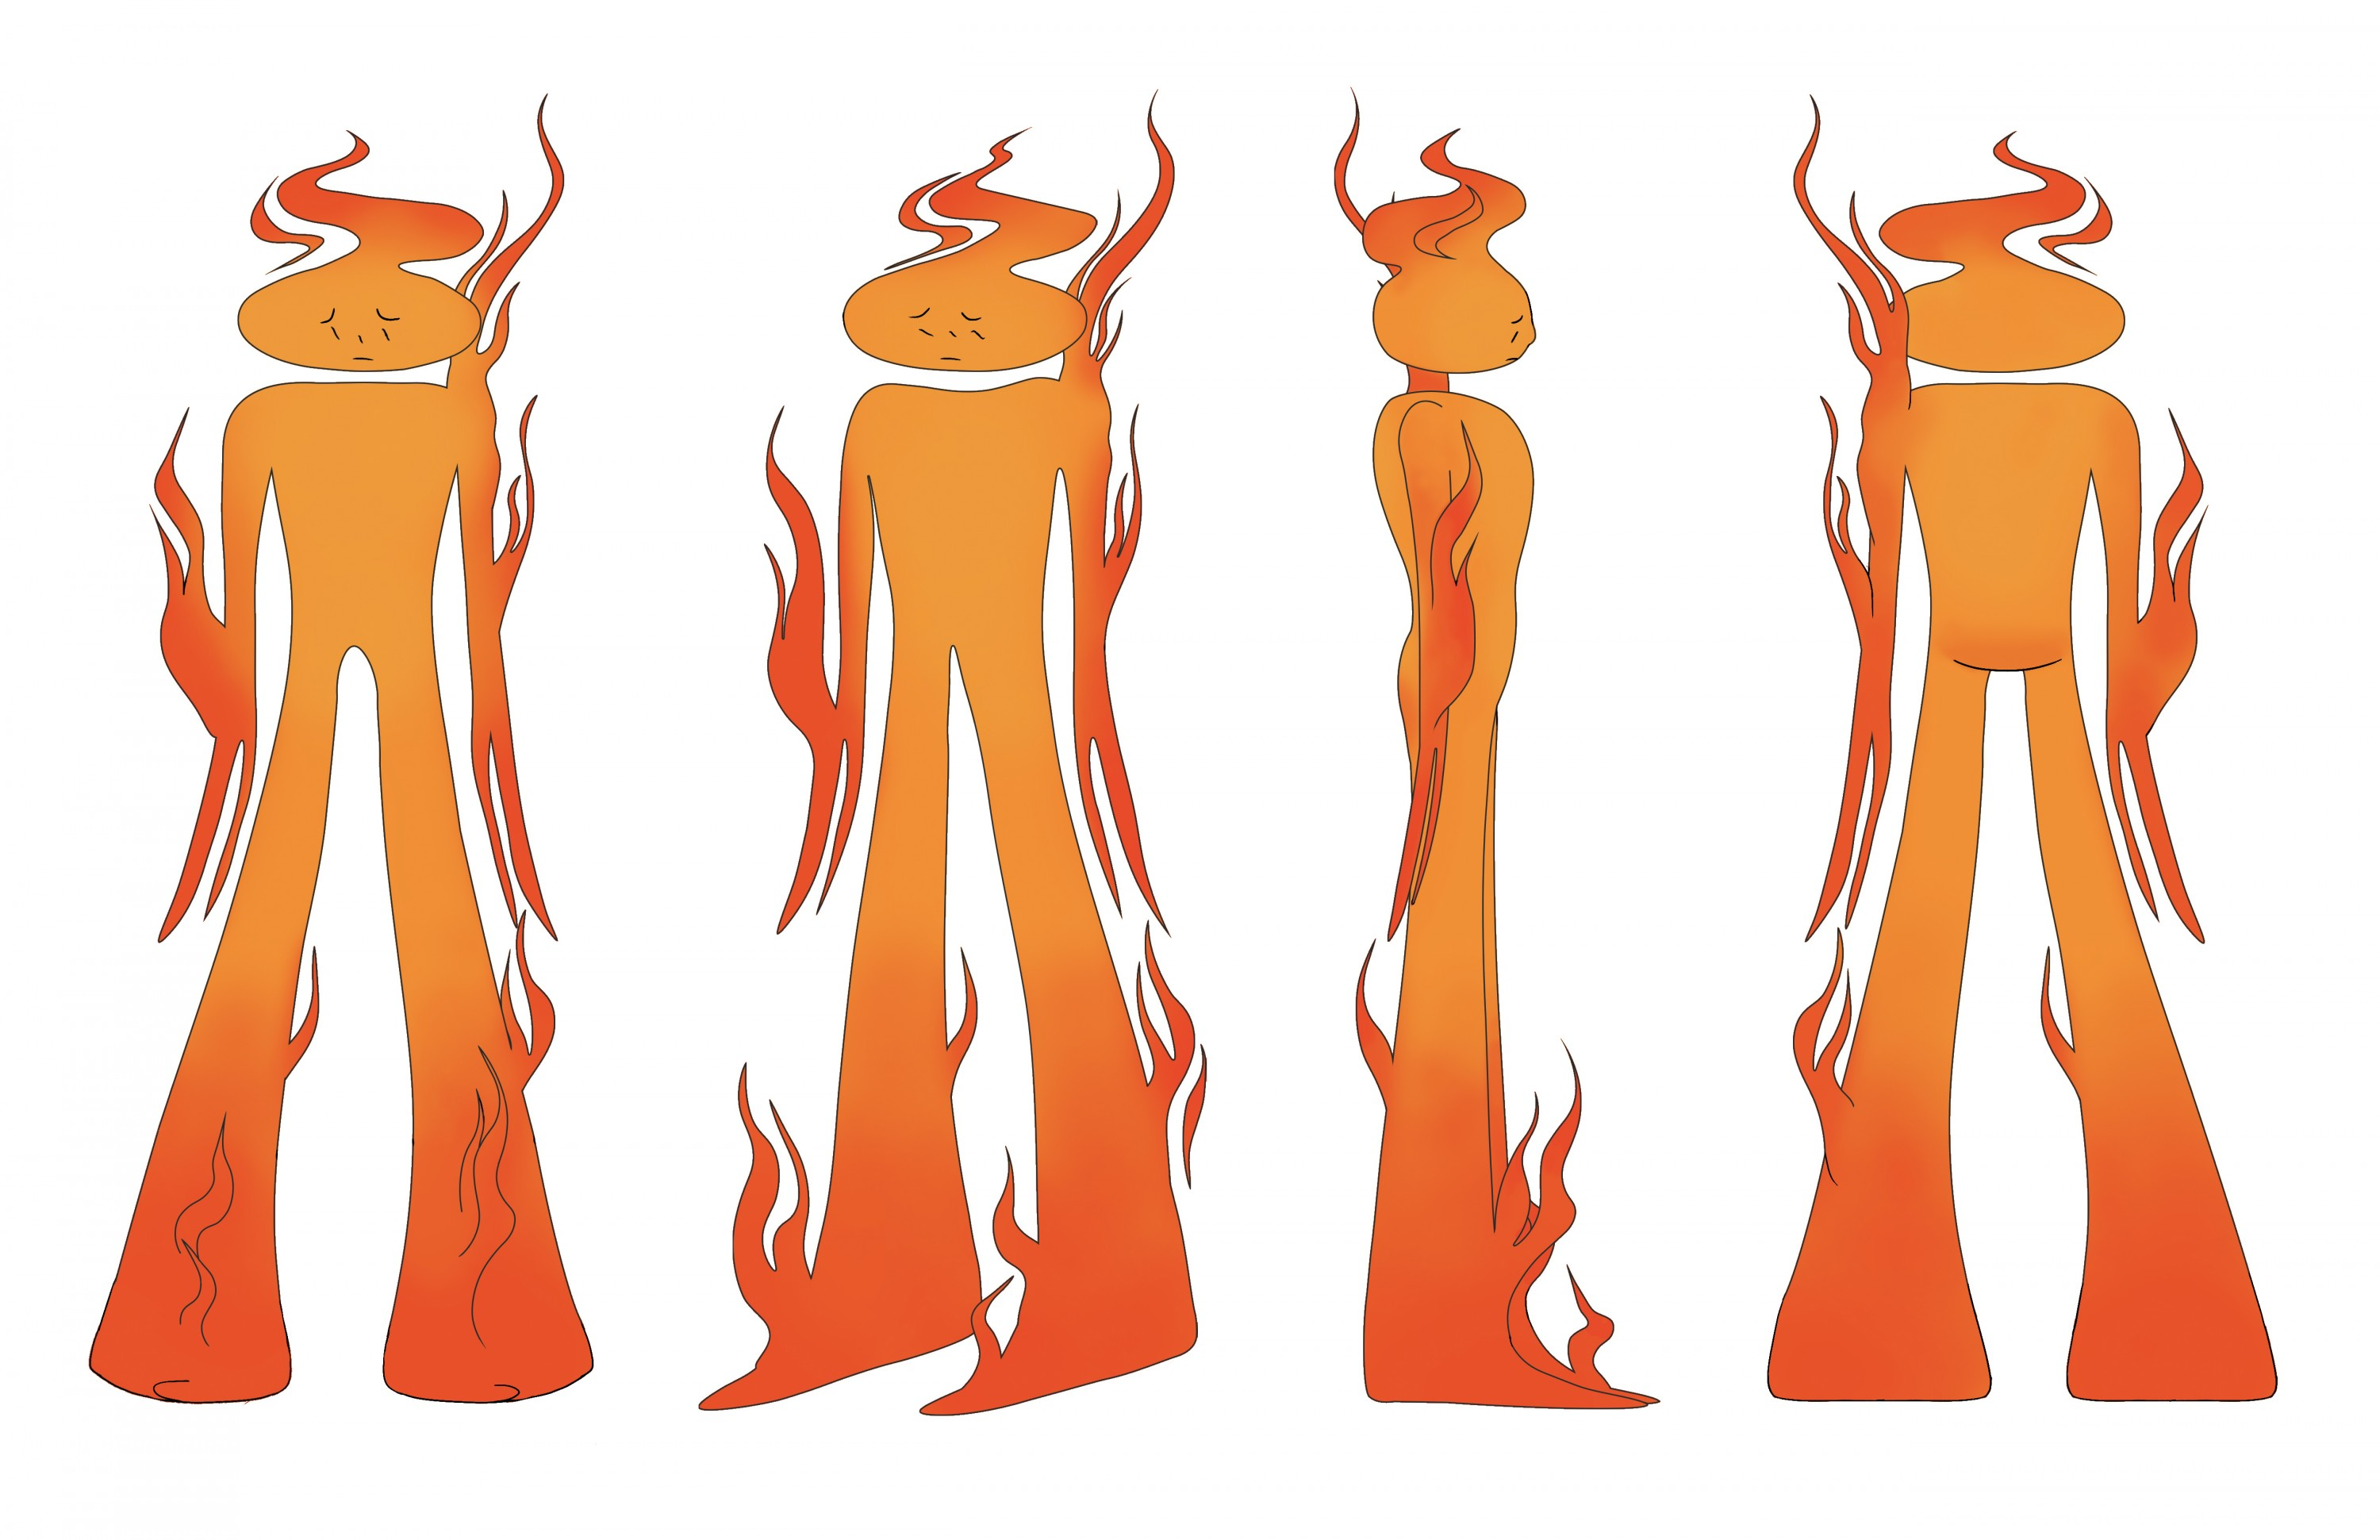 A visual development character design piece showing the character named Solace from multiple different angles. Solace is made of fire and wears no clothes, he is humanoid with thick-heeled feet, no toes, long spindly two-fingered hands and a slightly floa